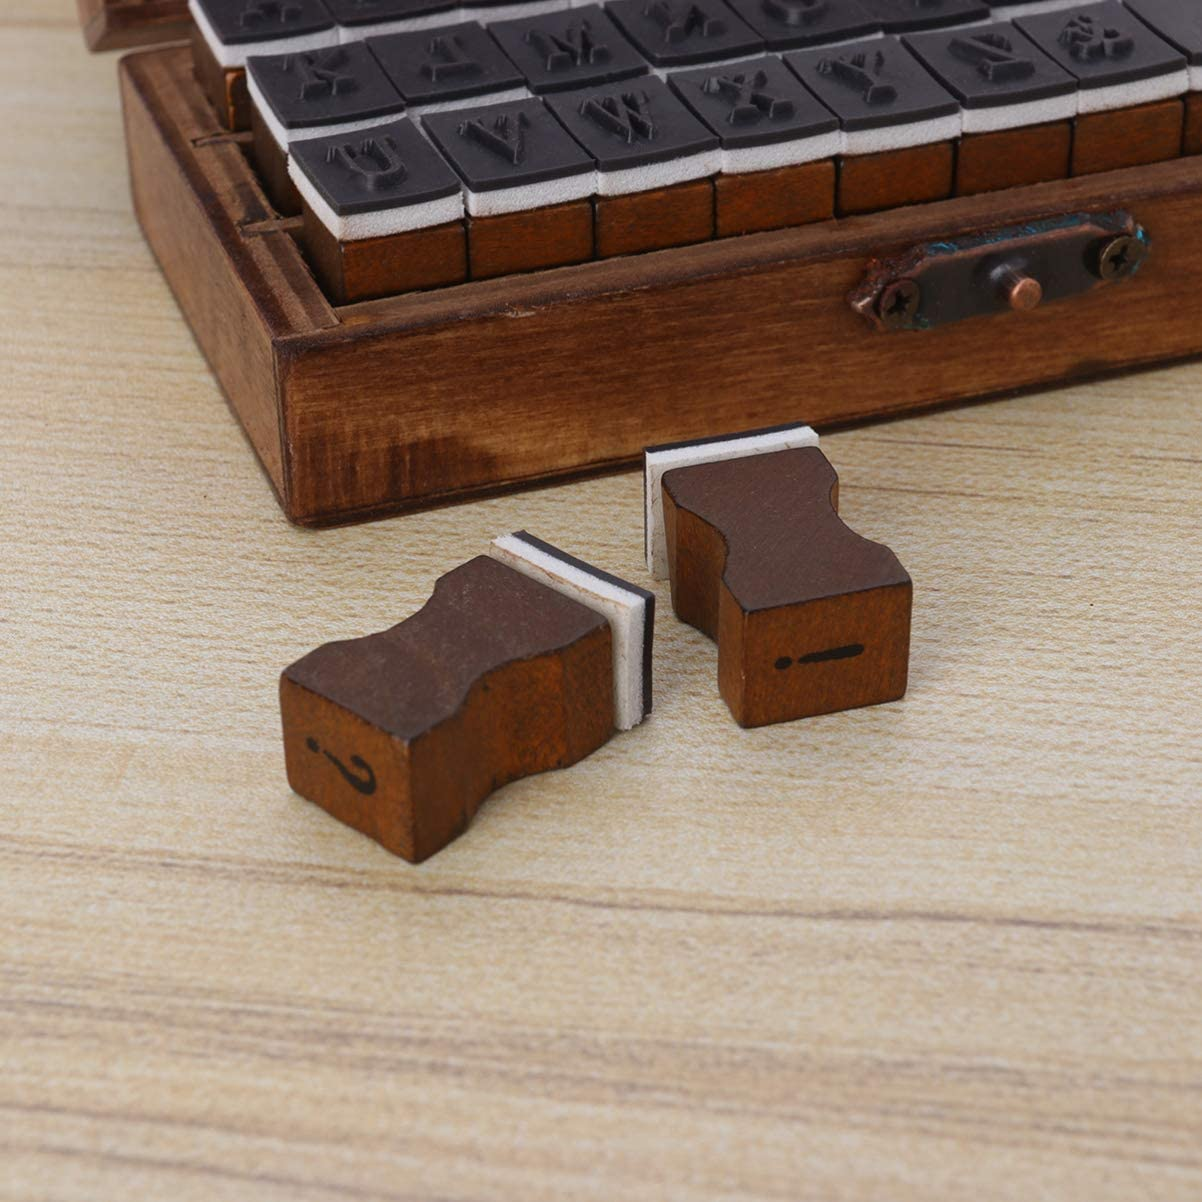 Crafts Card Making SUPVOX 30pcs Rustic Letter Stamps Alphabet Stamps Wood Rubber Stamps Symbol Stamp with Wooden Box for Scrapbook